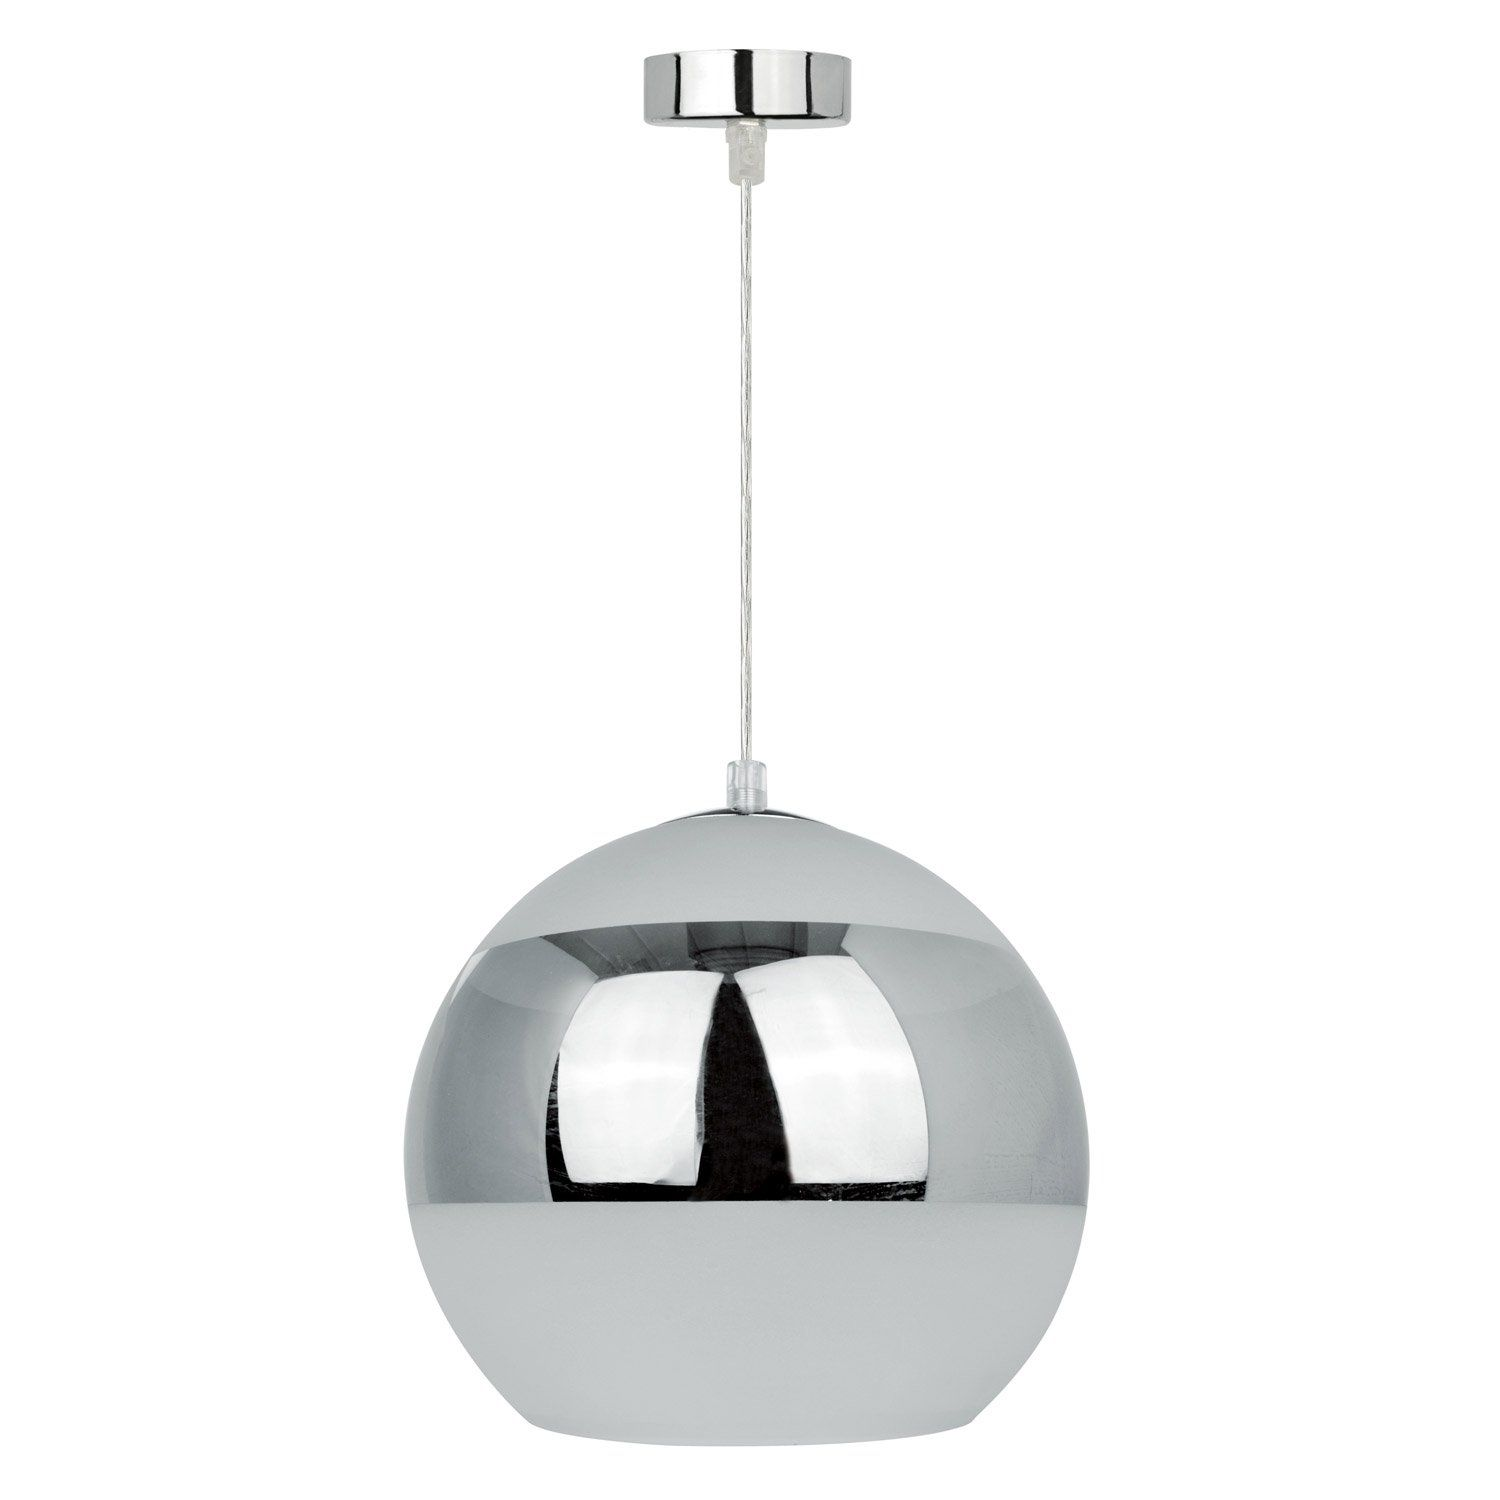 Suspension Design Baloa Métal Gris Argenté 1 X 60 W Inspire Suspension Design Suspension Leroy Merlin Luminaire